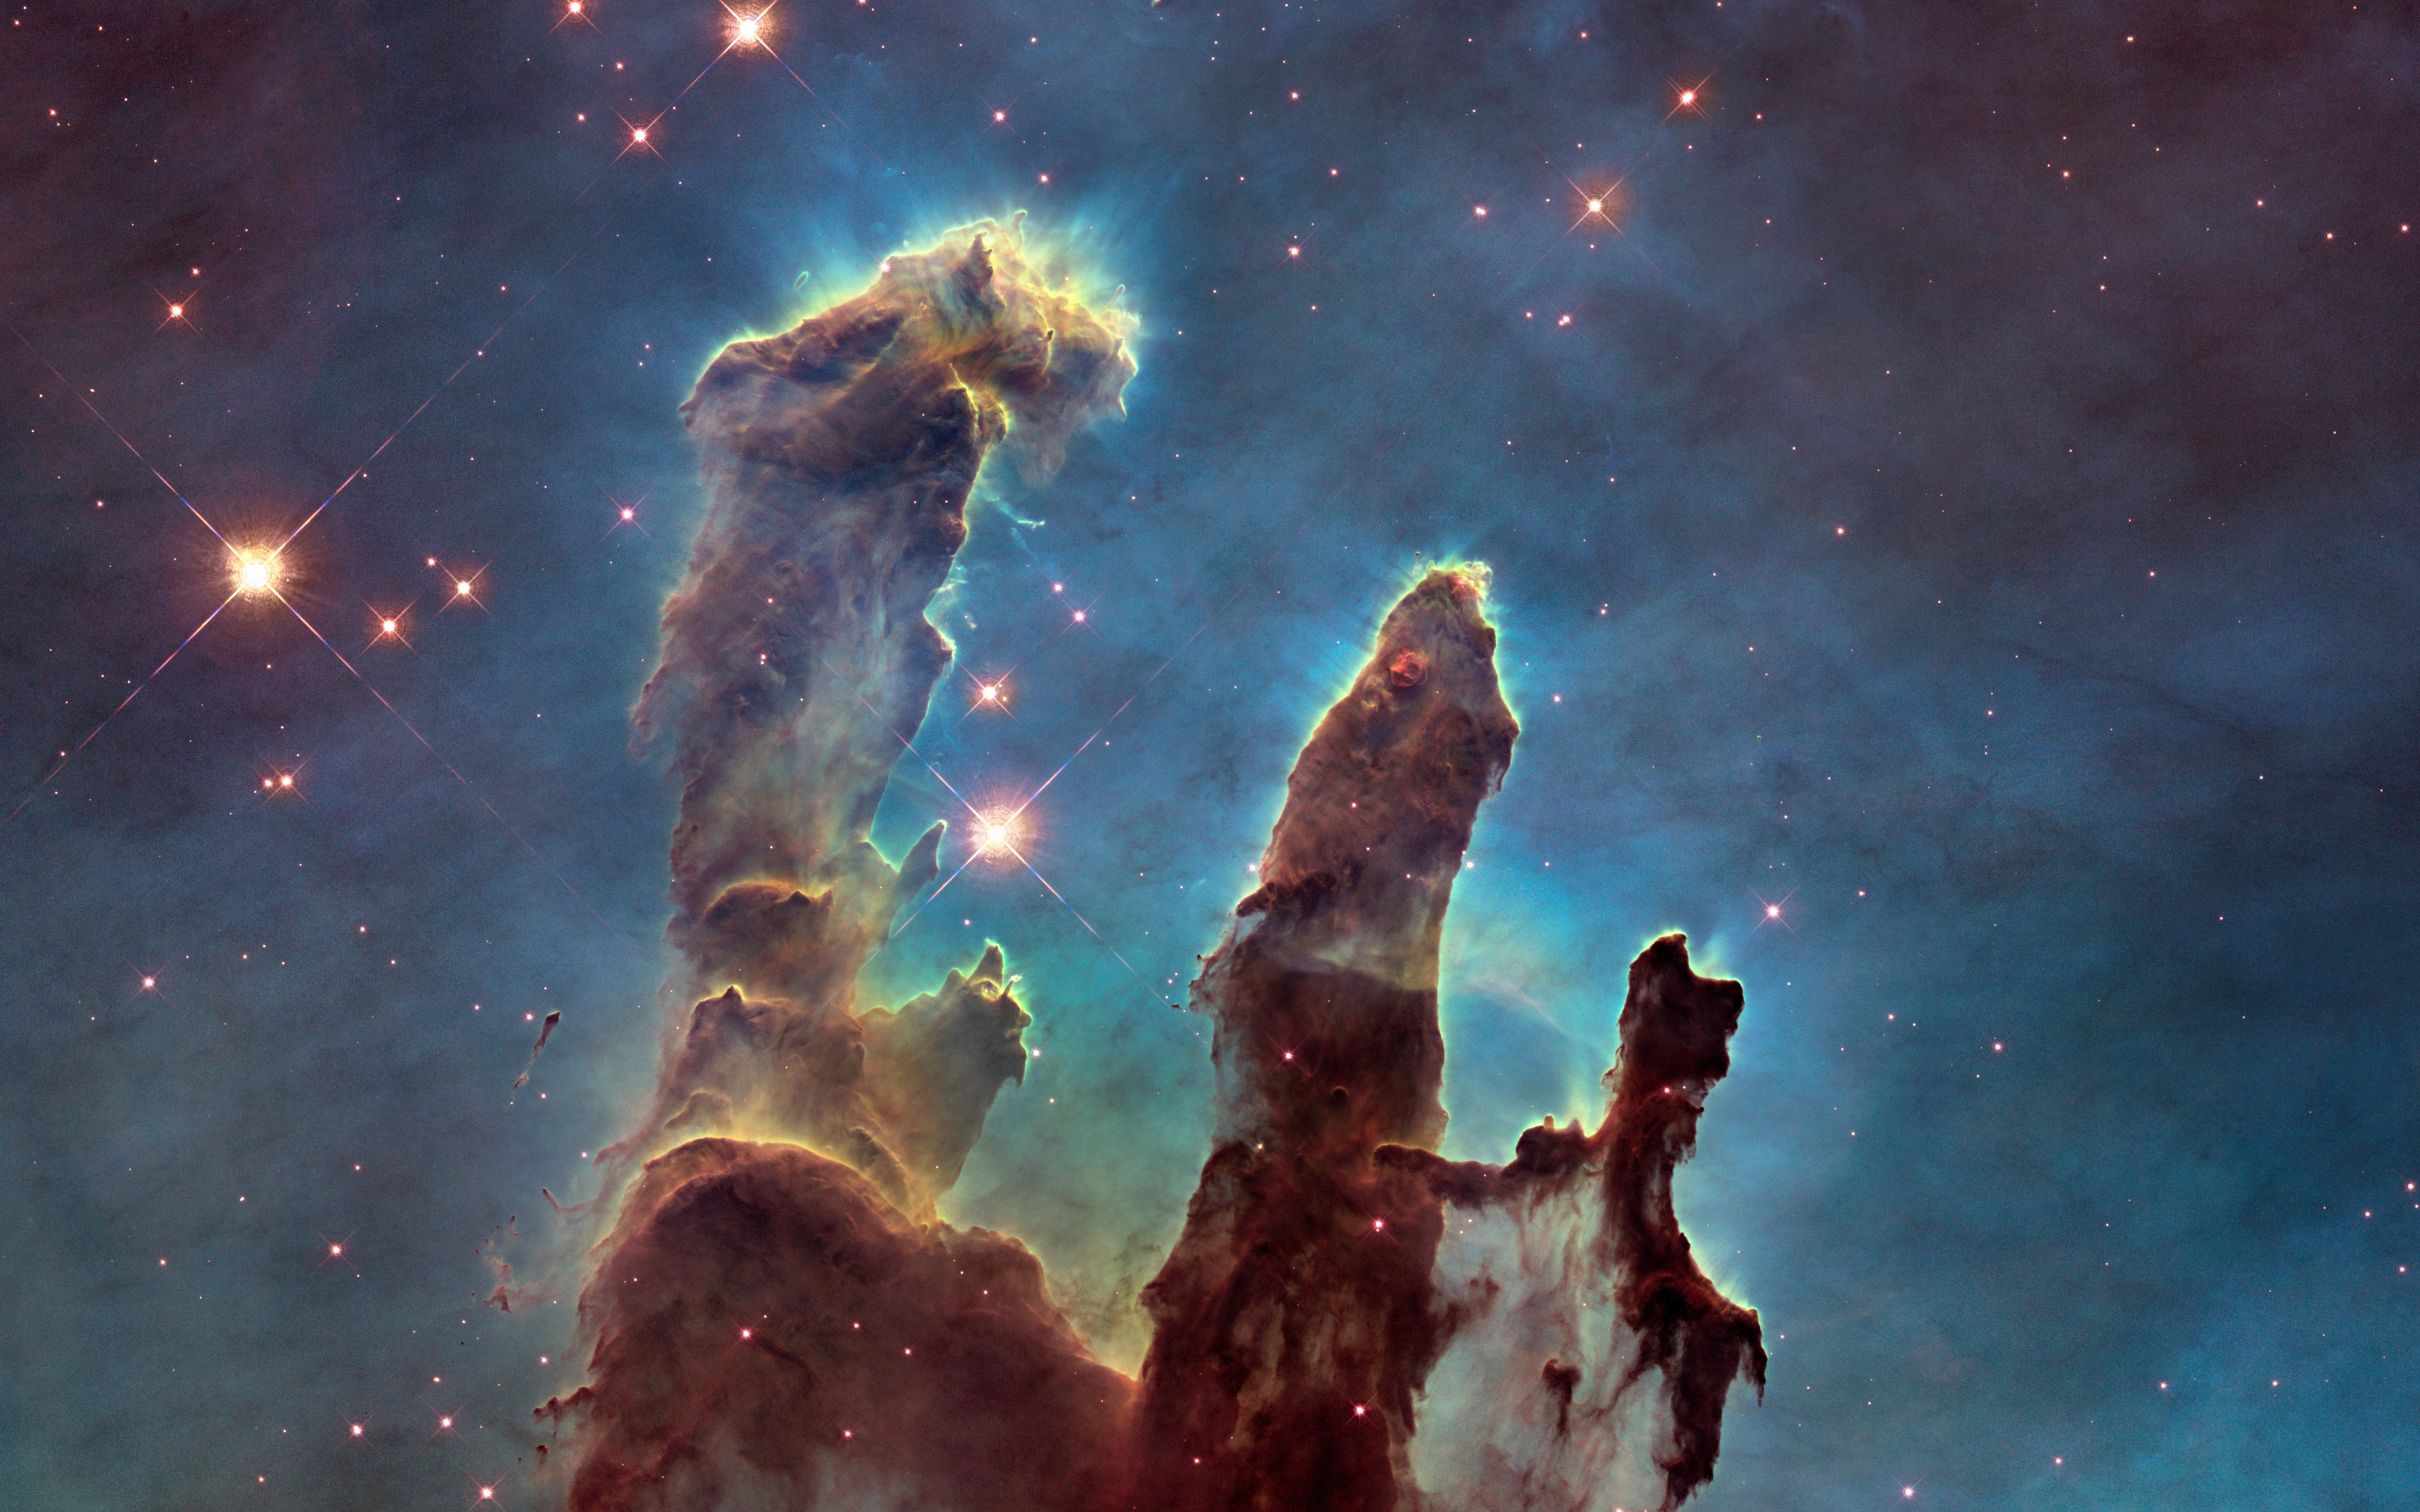 The Eagle Nebula's Pillars of Creation wallpaper 5120x3200